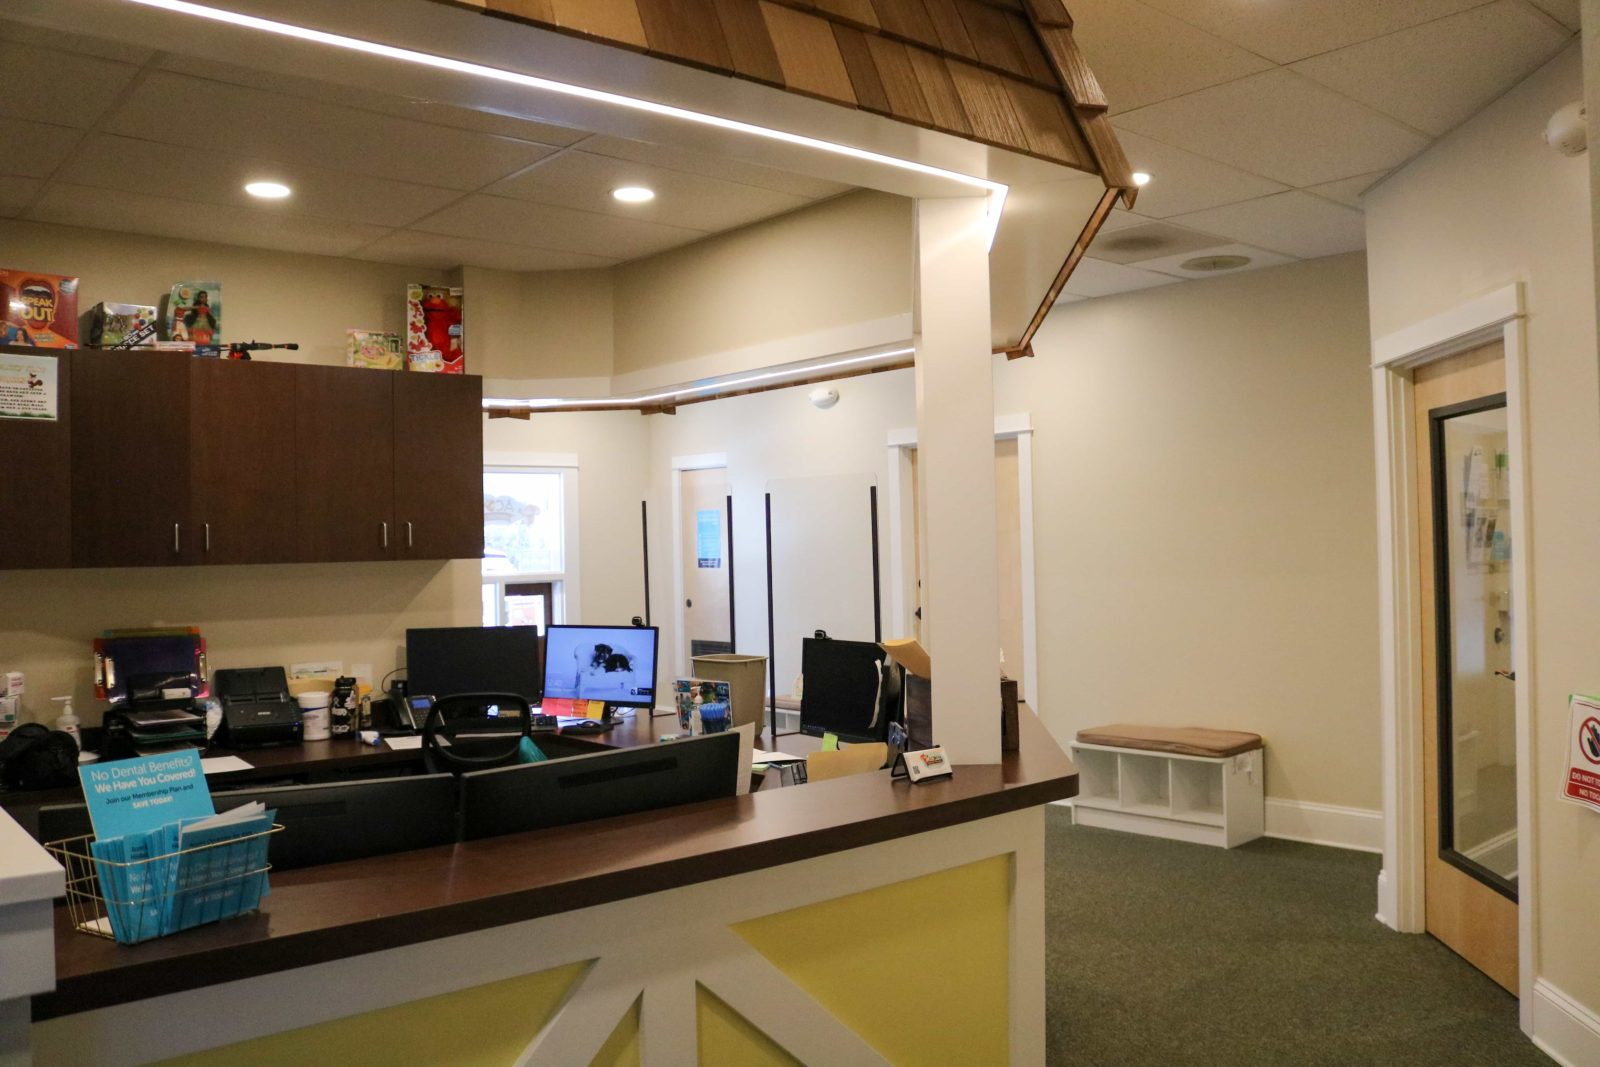 interior waiting room of Hillsboro office with front desk